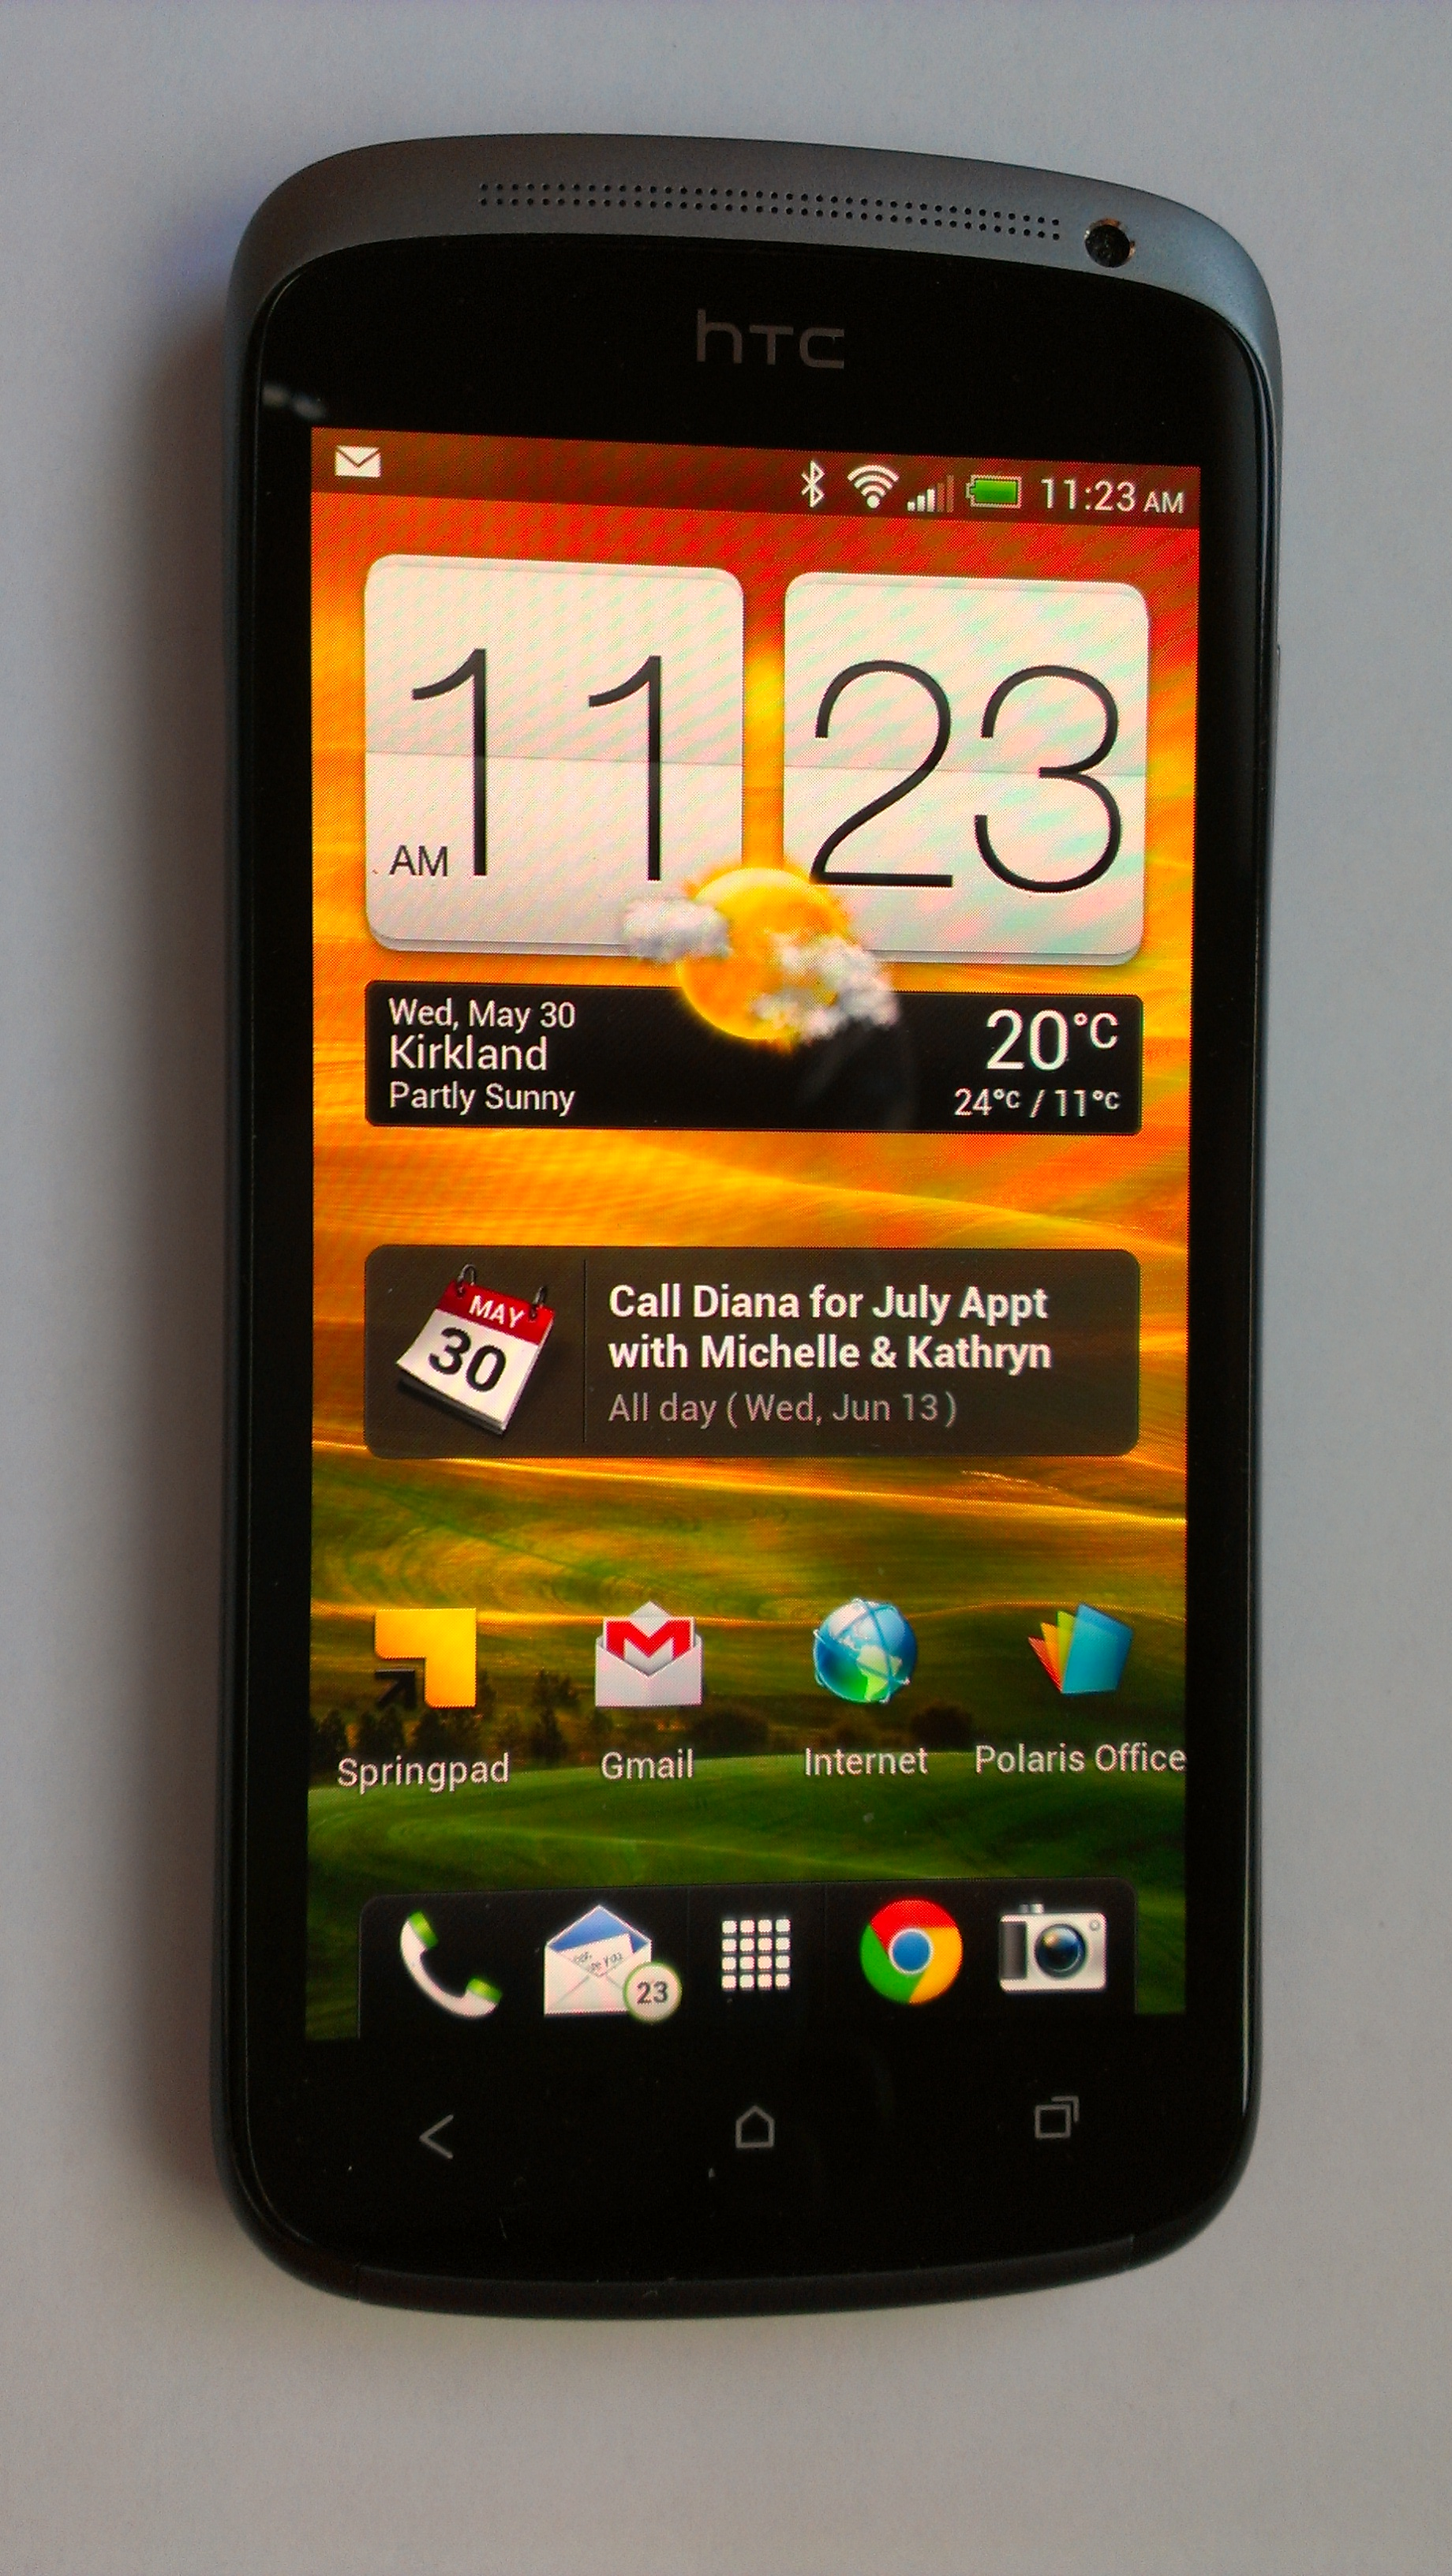 htc one s the absolute best android smartphone you can buy rh hometechmtl com HTC One XL HTC One V